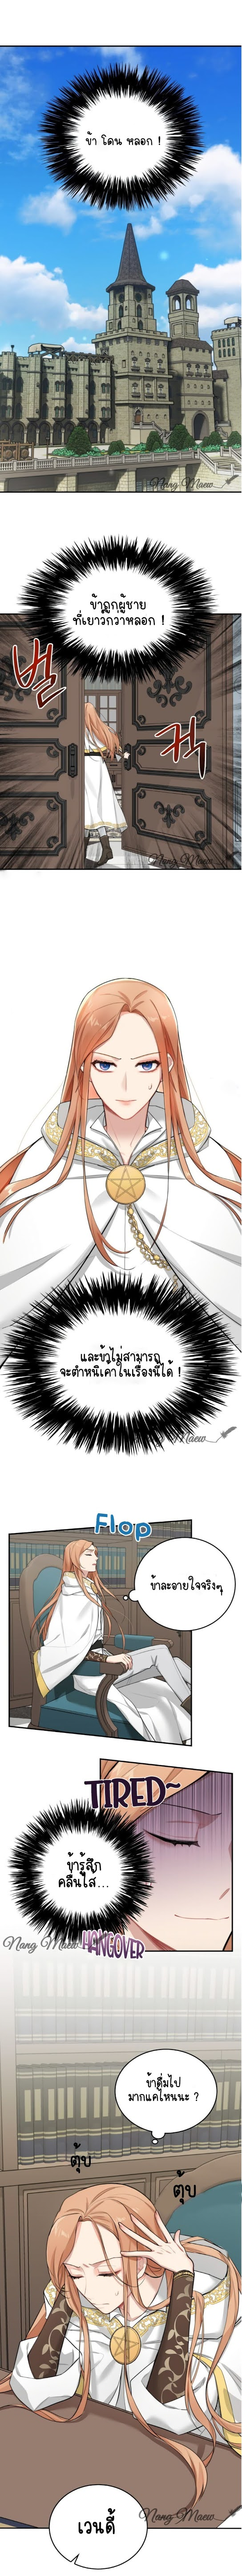 The Newlywed Life of a Witch and a Dragon - หน้า 2